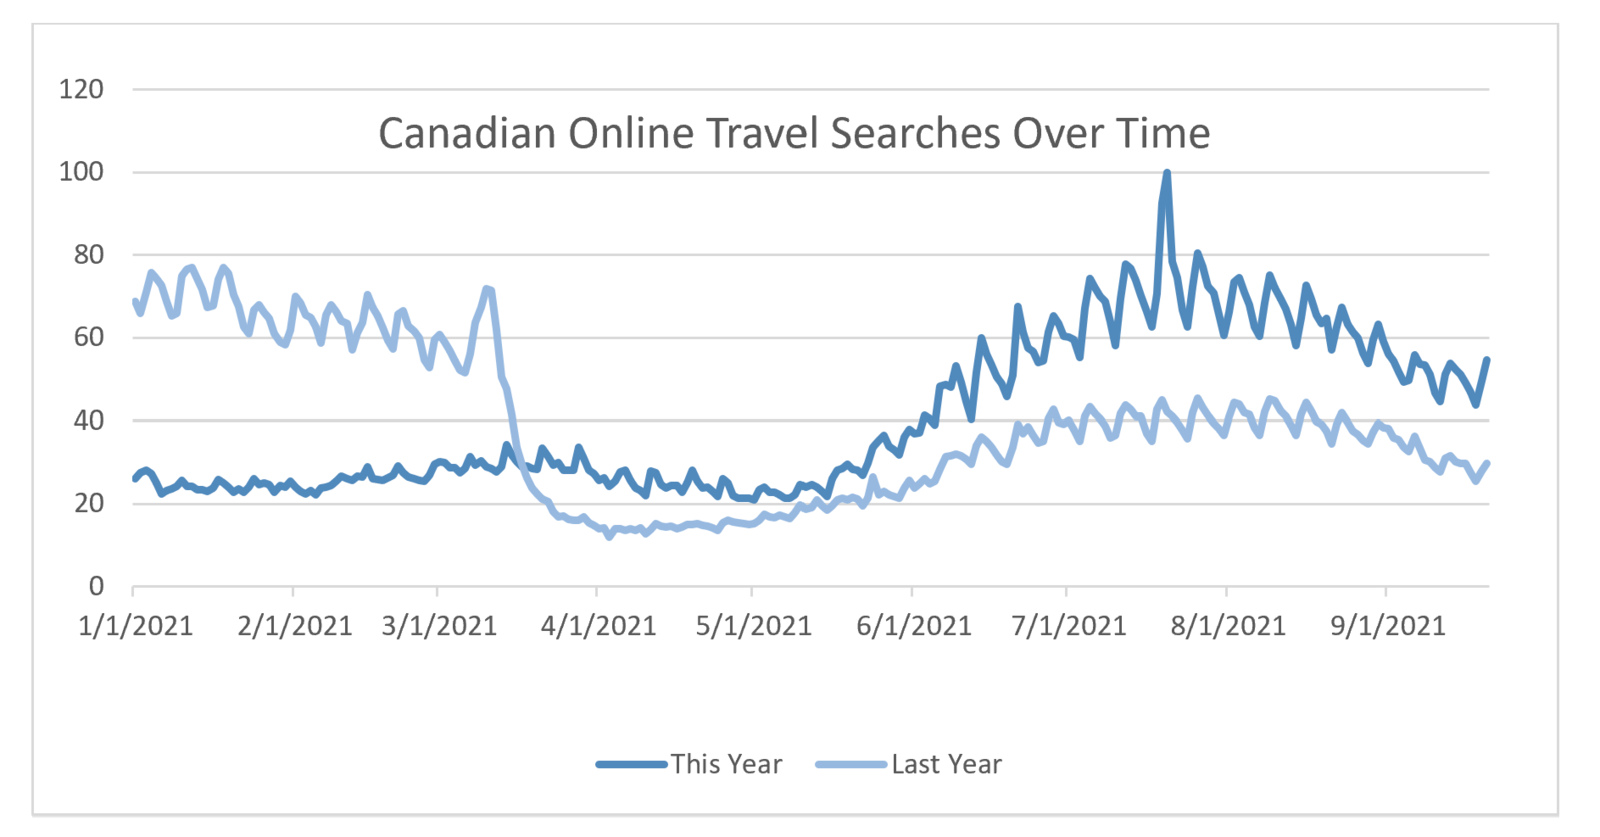 Canadian Online Travel